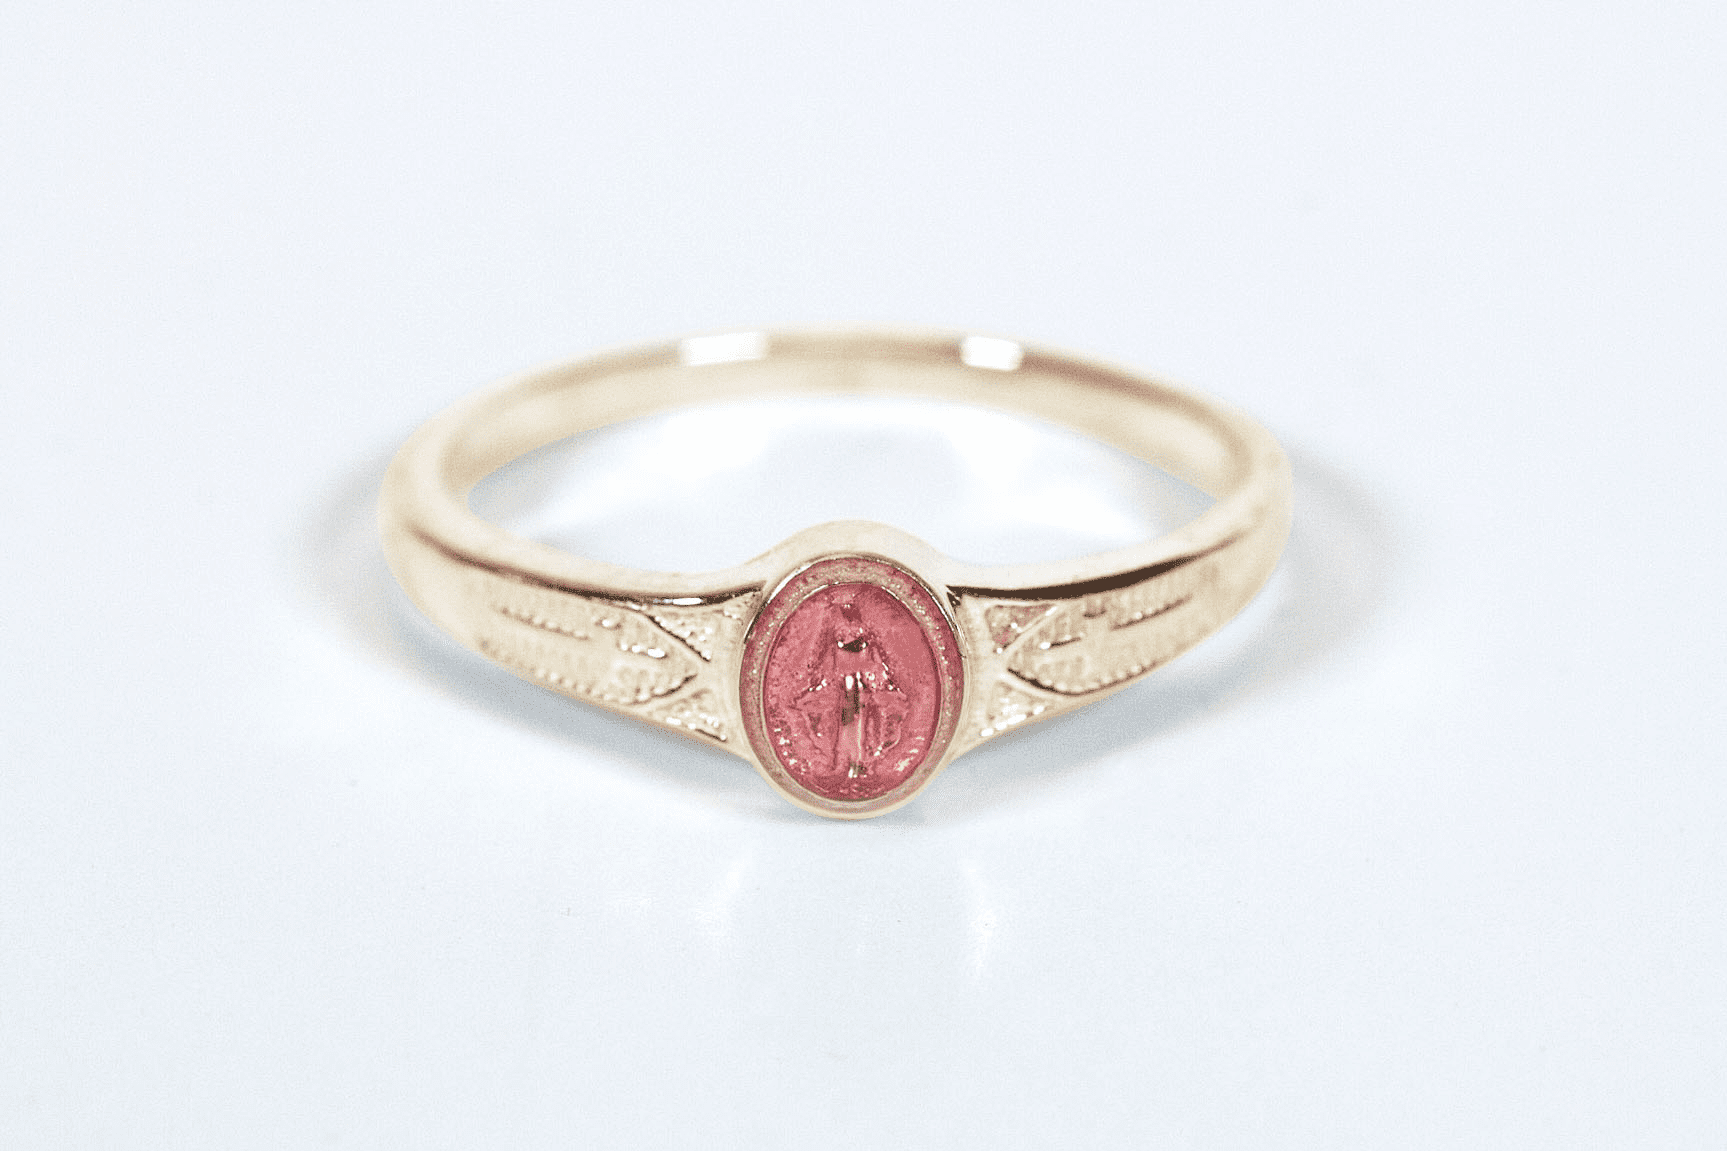 Bliss Child's Catholic 14kt Yellow Gold Pink Epoxy Miaculous Medal Ring